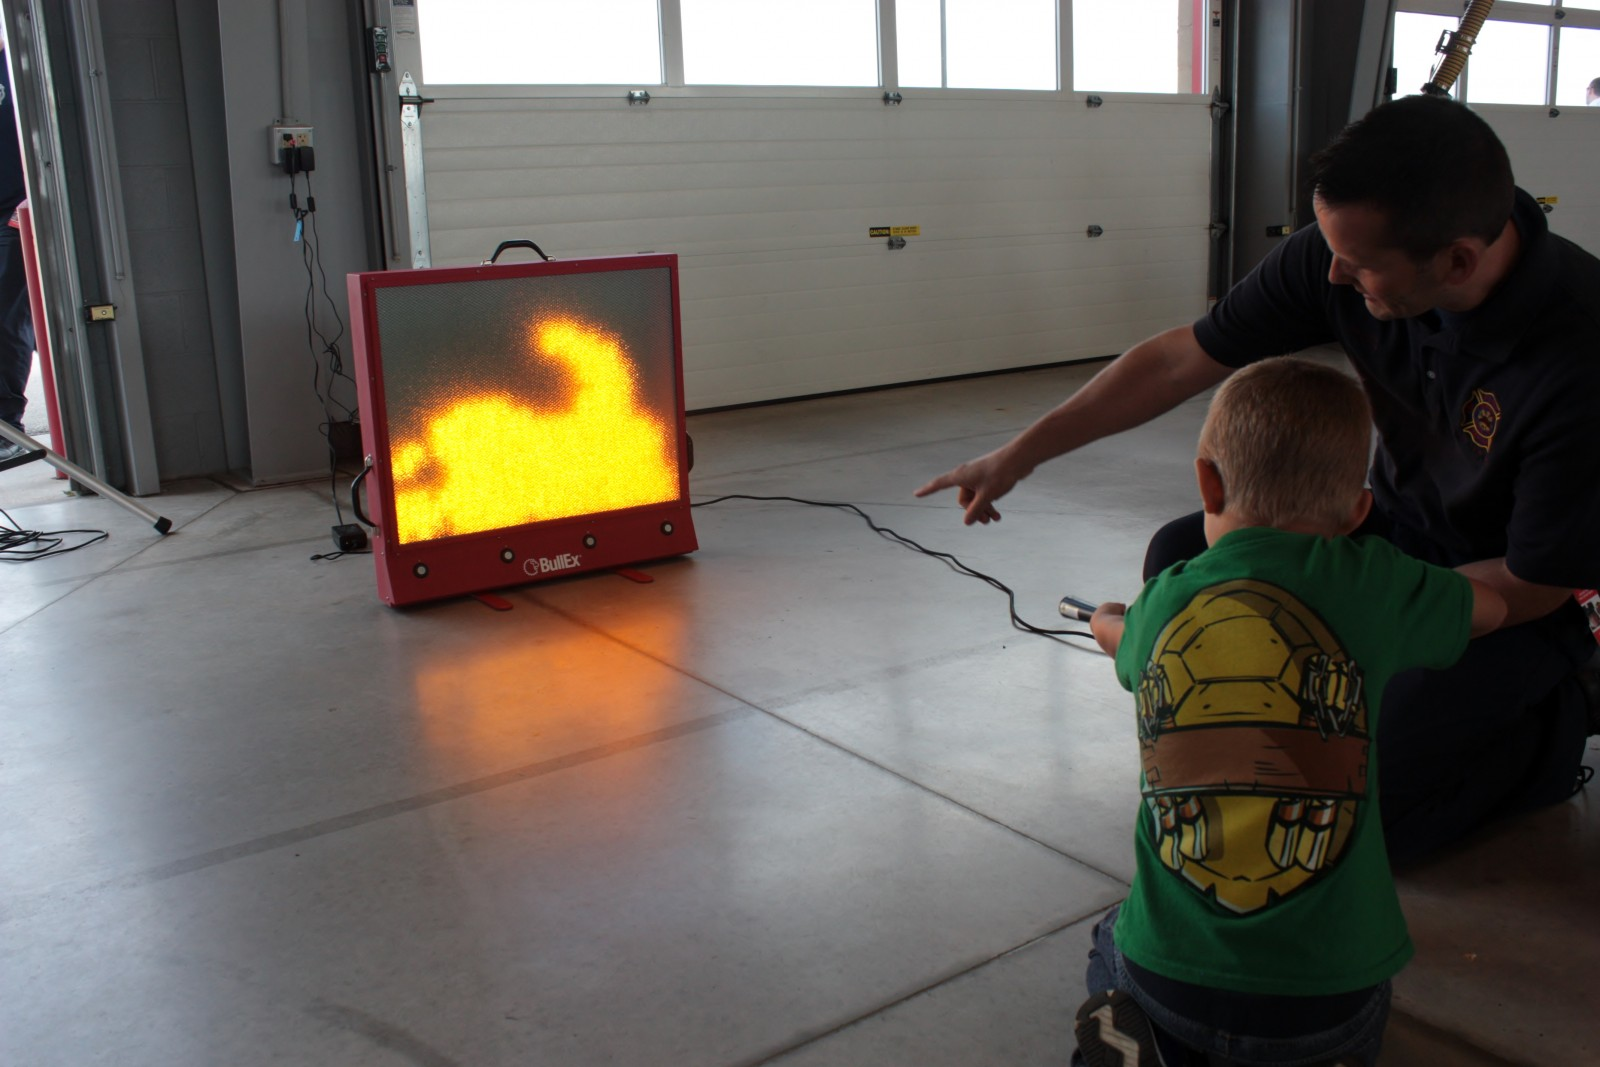 GCFD Firefighter Instructing Child on Fire Extinguisher Use